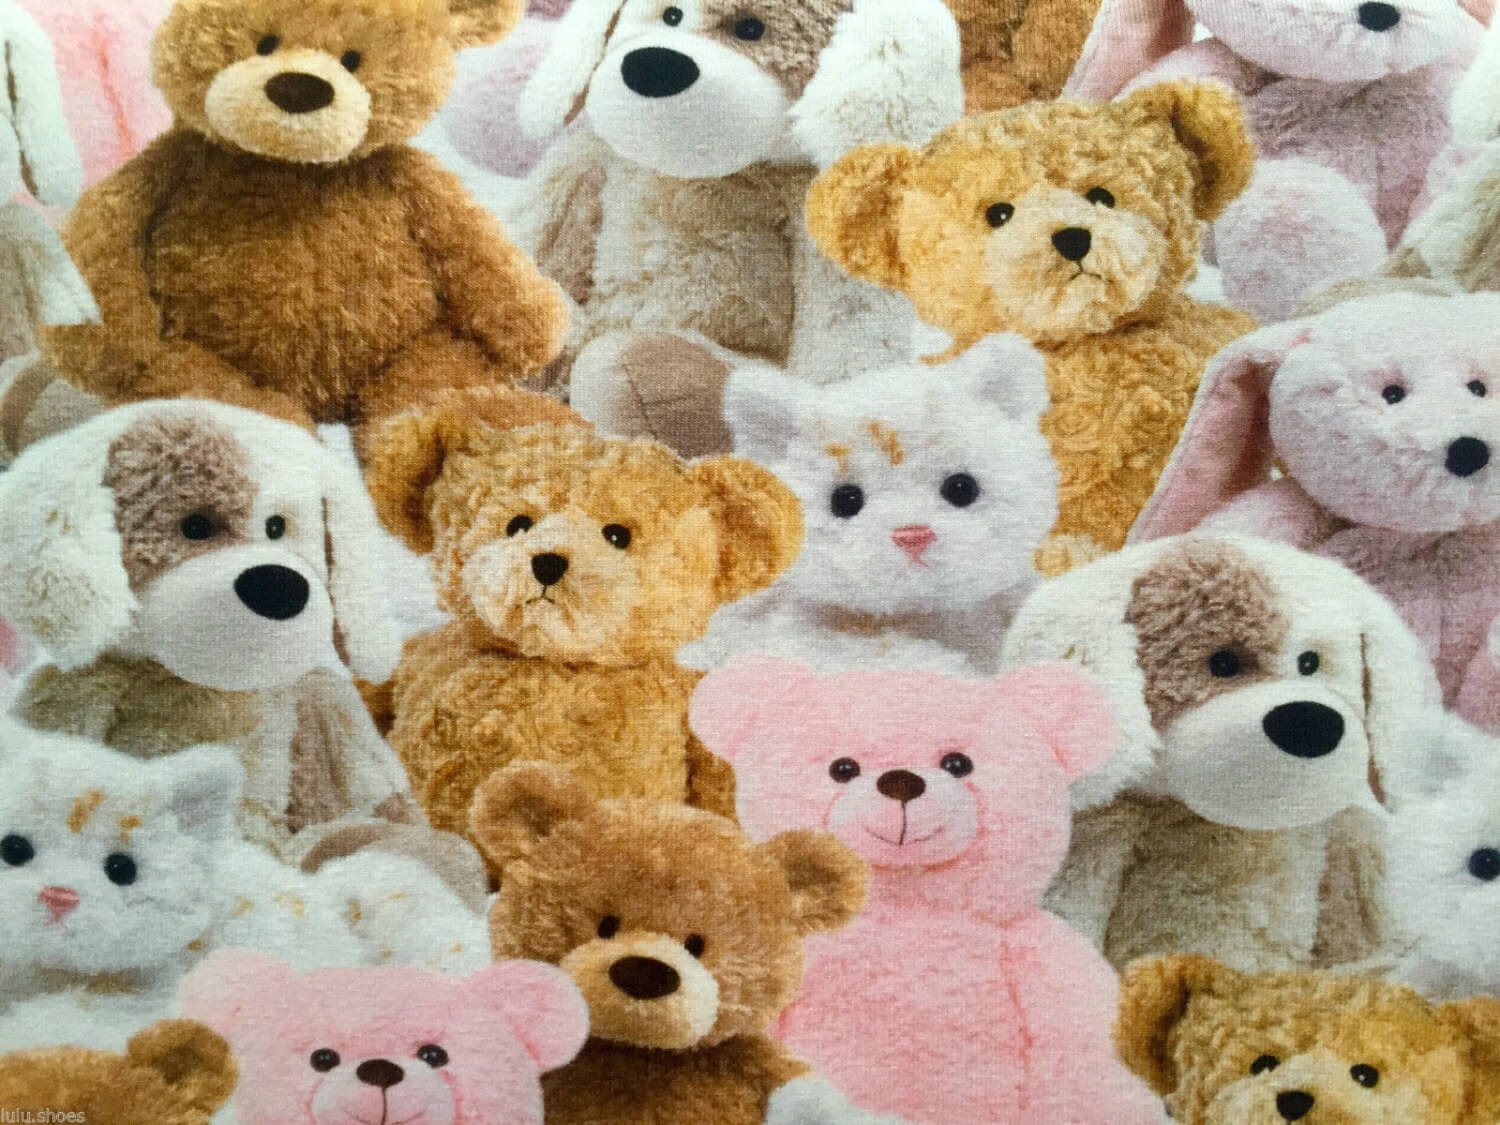 Sweet Teddy Bear Fabric Plush Toys Cats Bears Dogs Stretch Cotton Jersey Material For Kids 160cm Wide Pink Lush Fabric